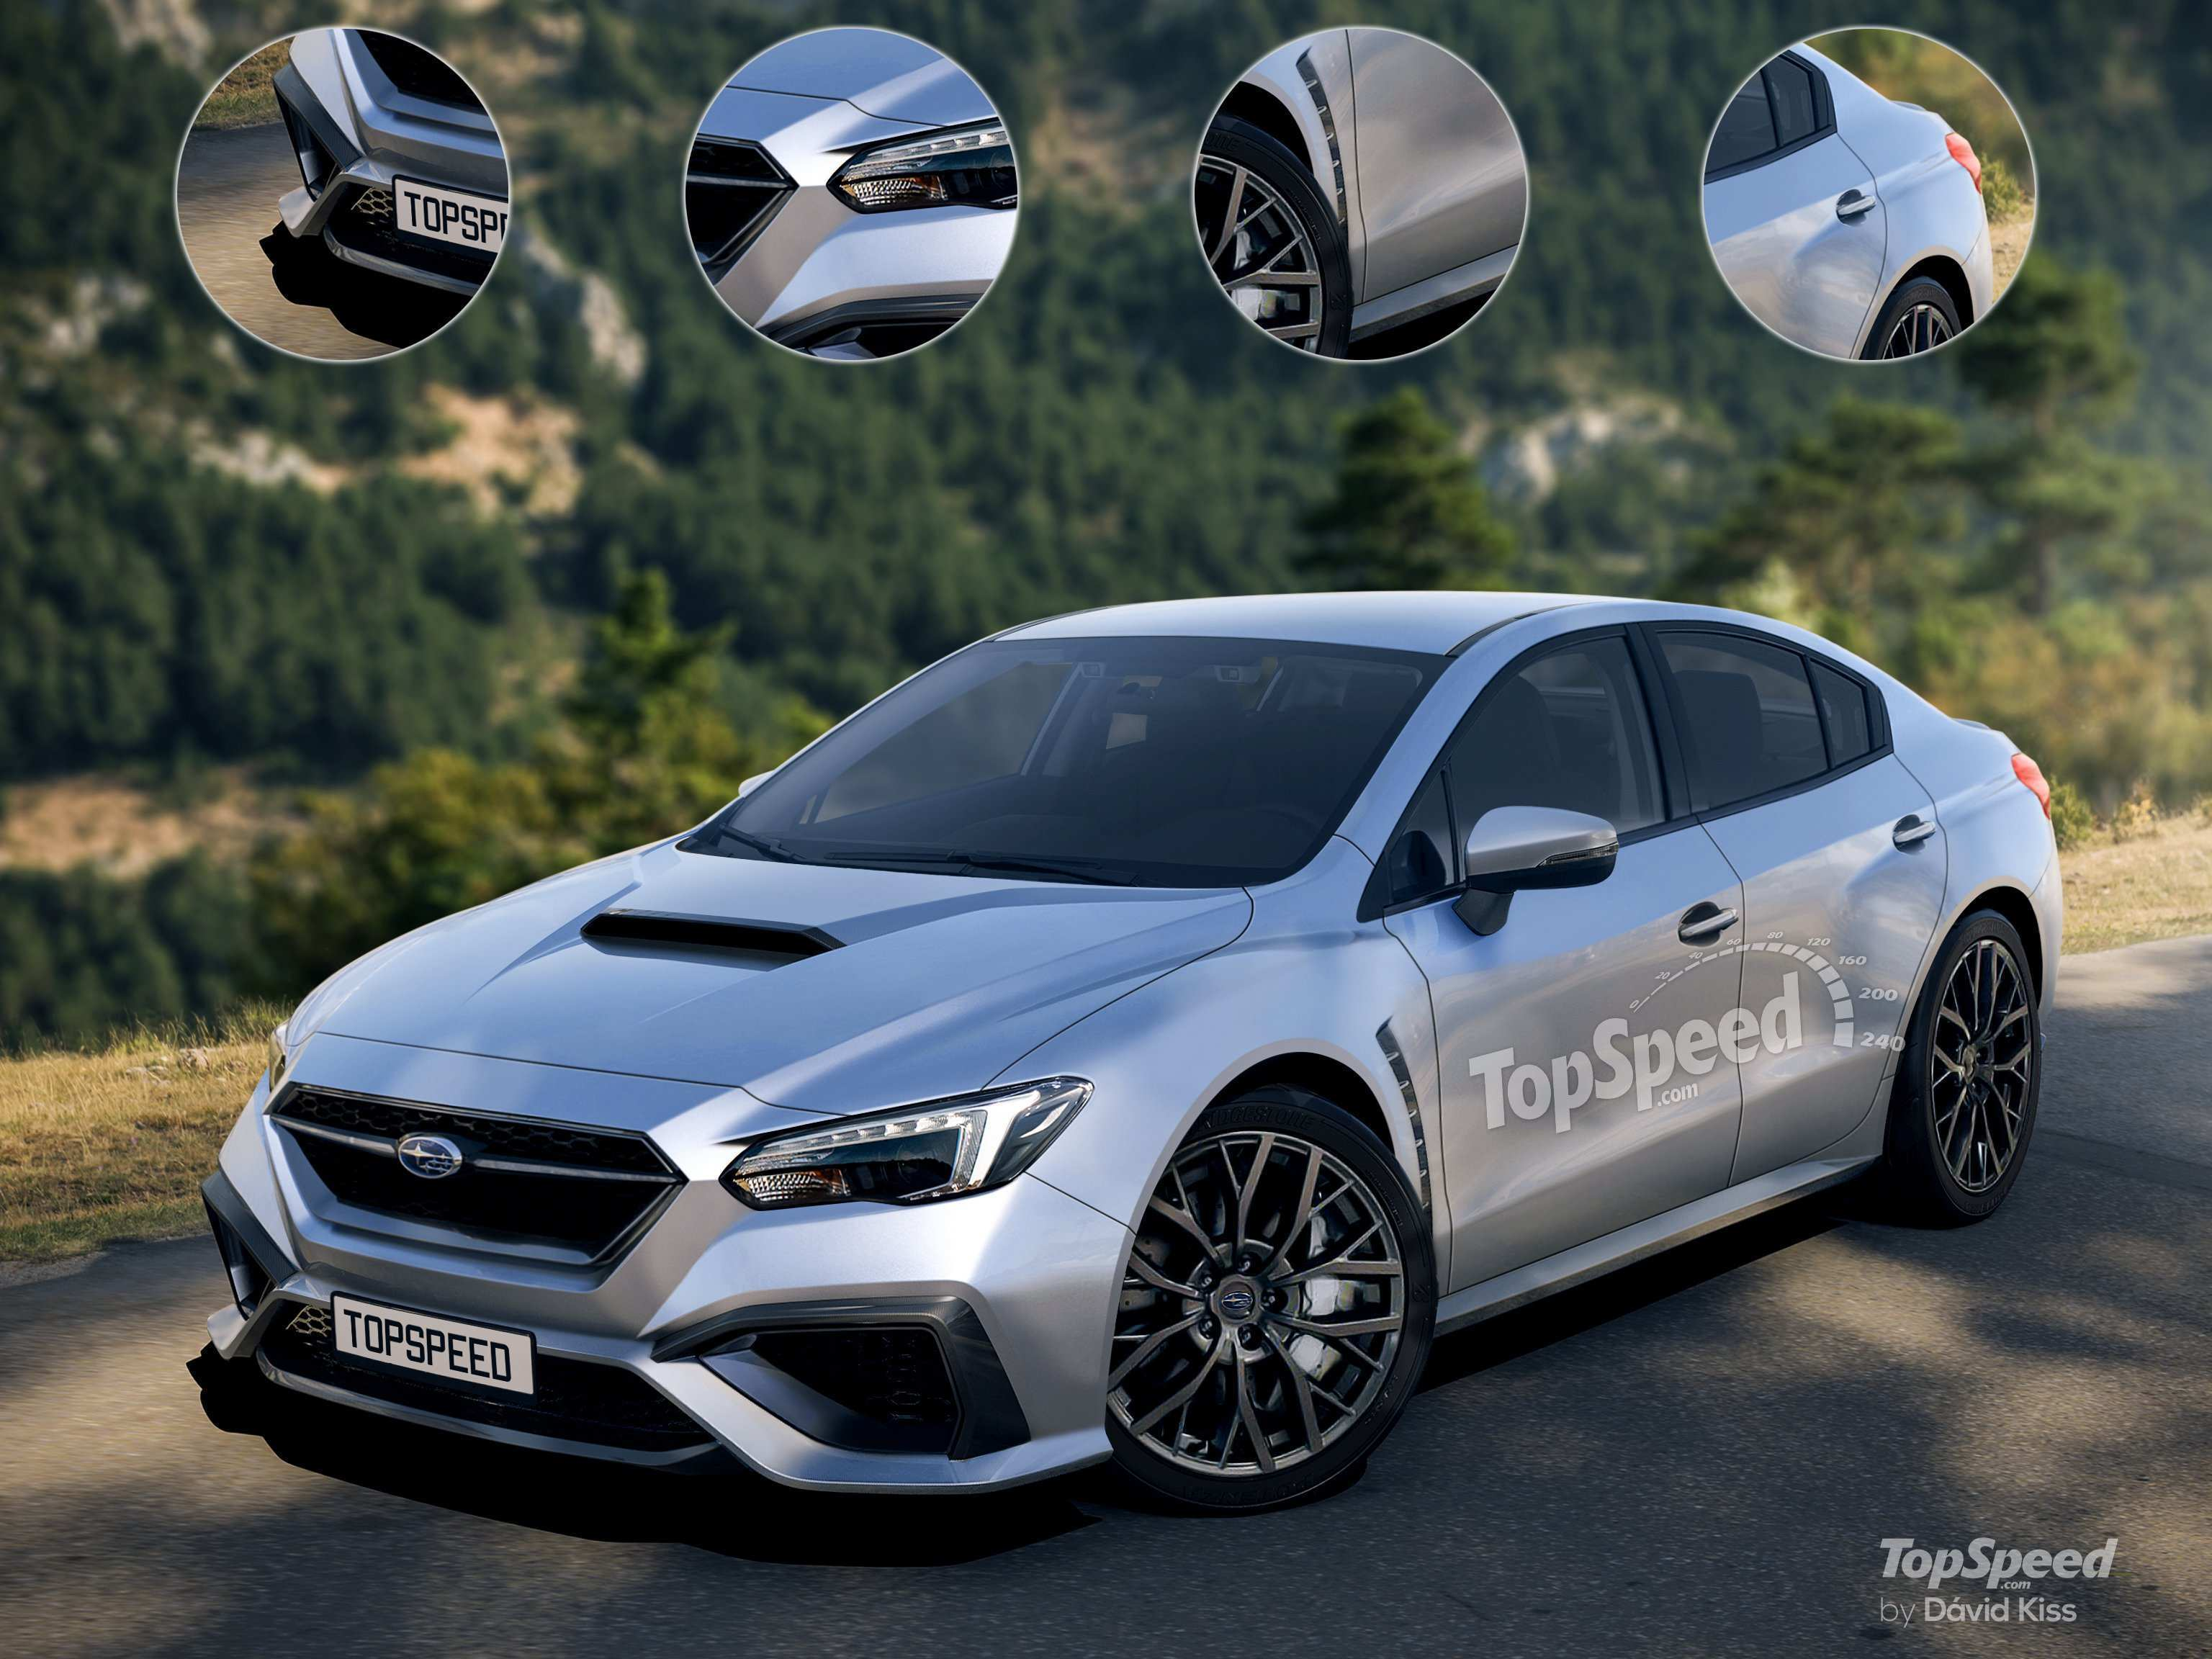 87 The Subaru Sti 2020 Exterior Rumors for Subaru Sti 2020 Exterior